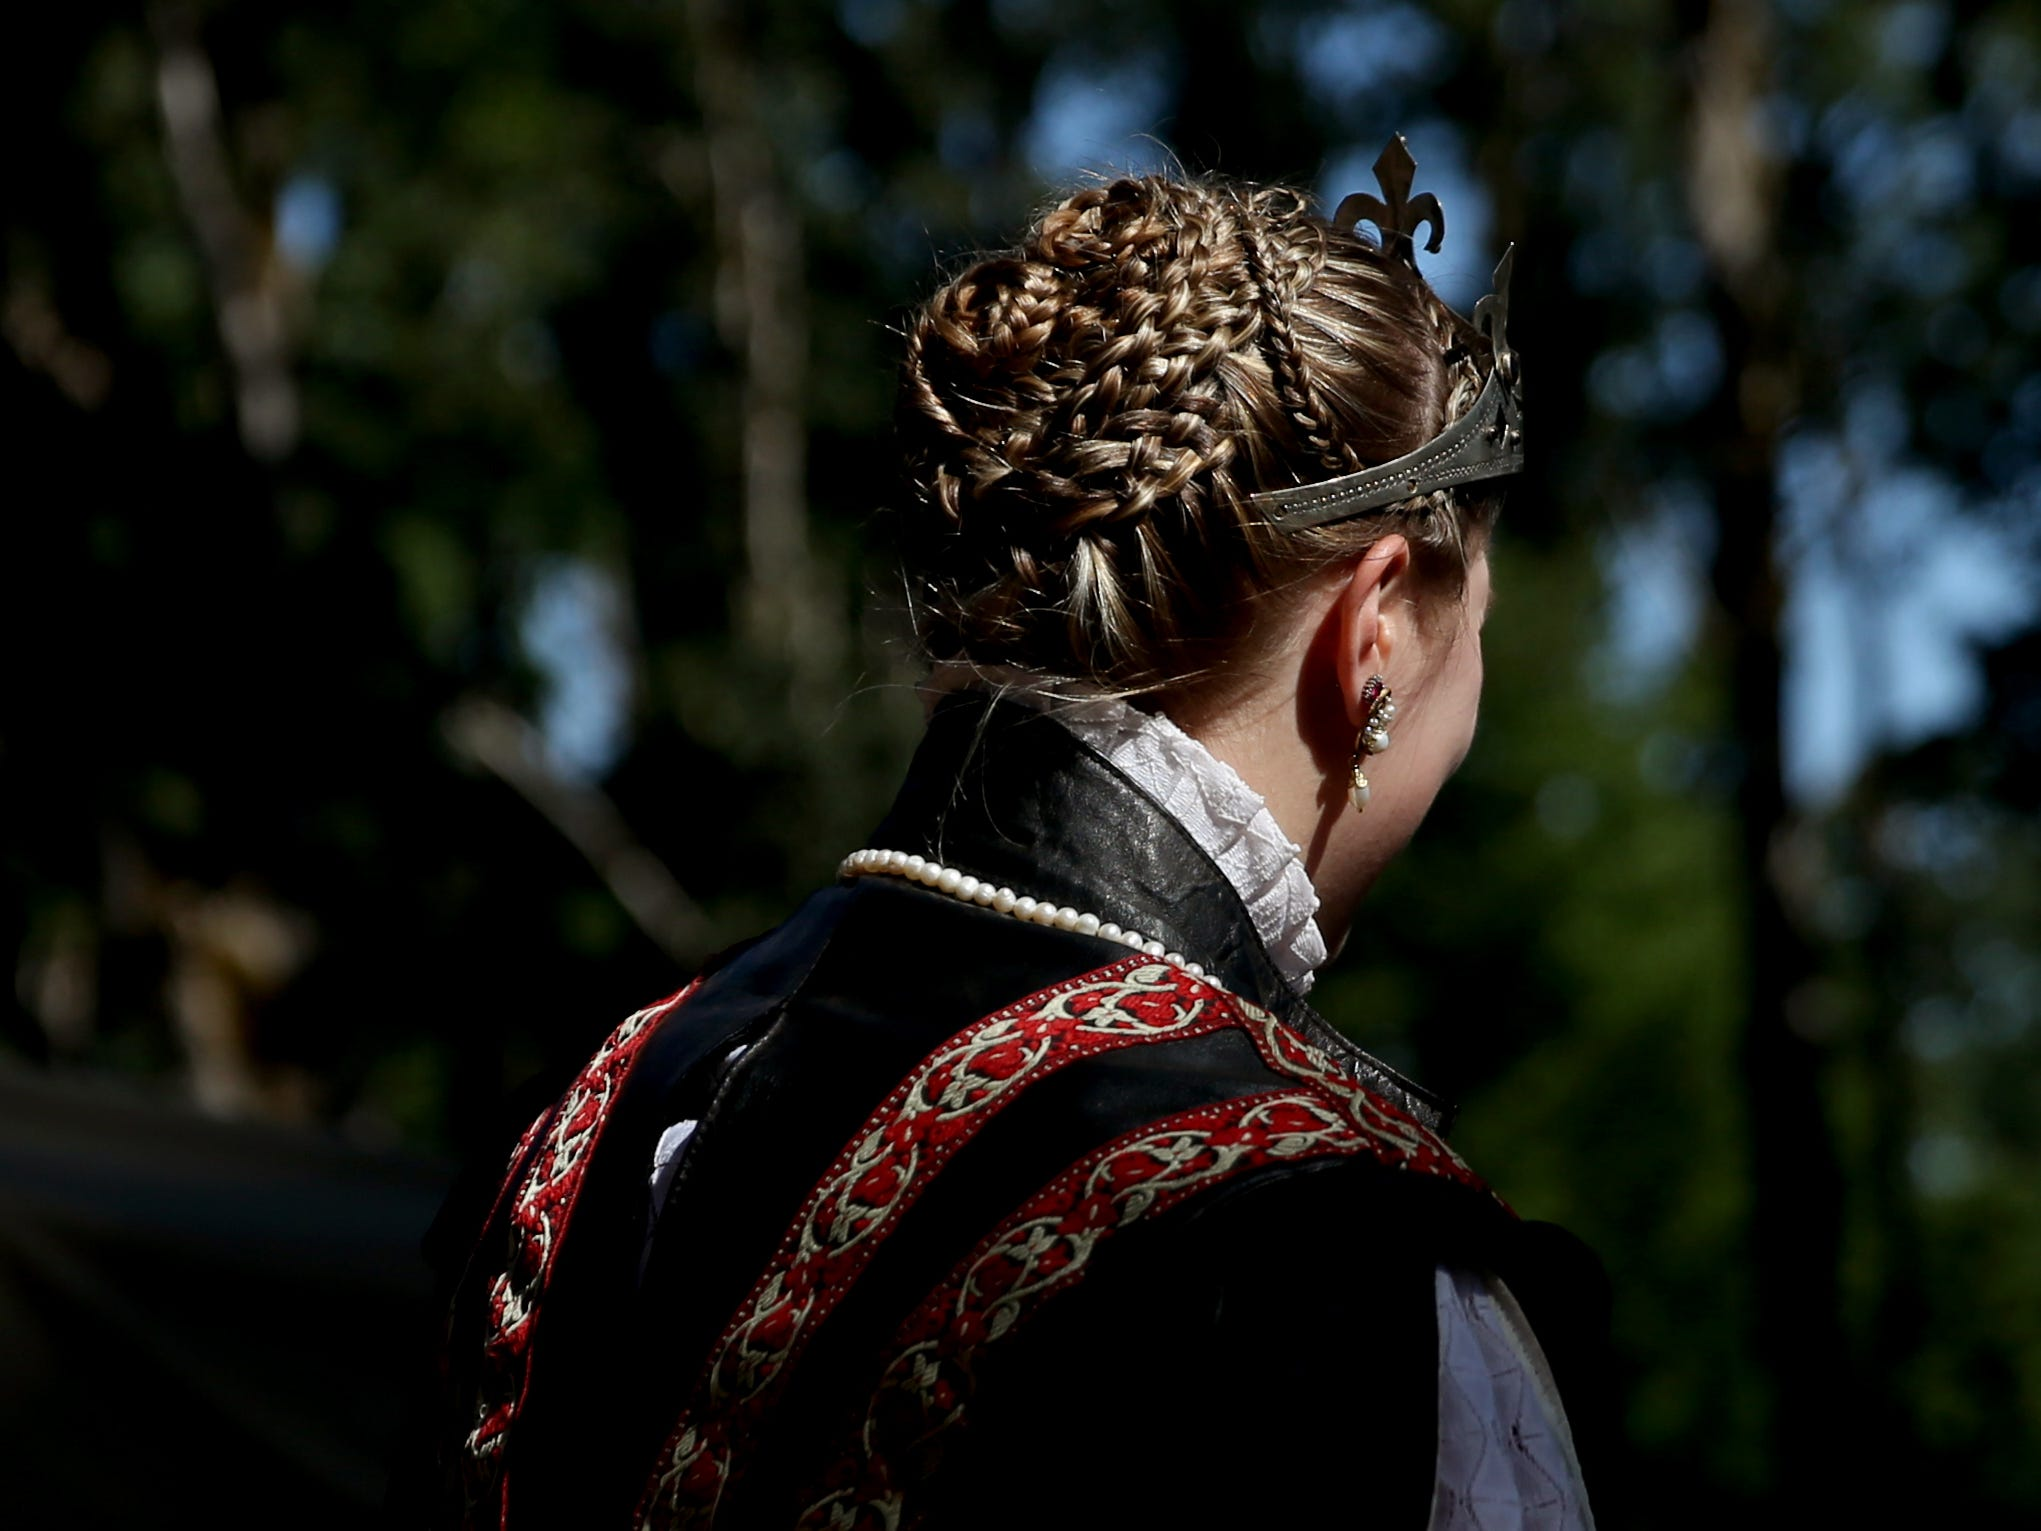 Alison White, of Wilsonville, plays Queen Elizabeth I during the Canterbury Renaissance Faire near Silverton on Saturday, July 21, 2018. The faire continues July 22, 28 and 29.